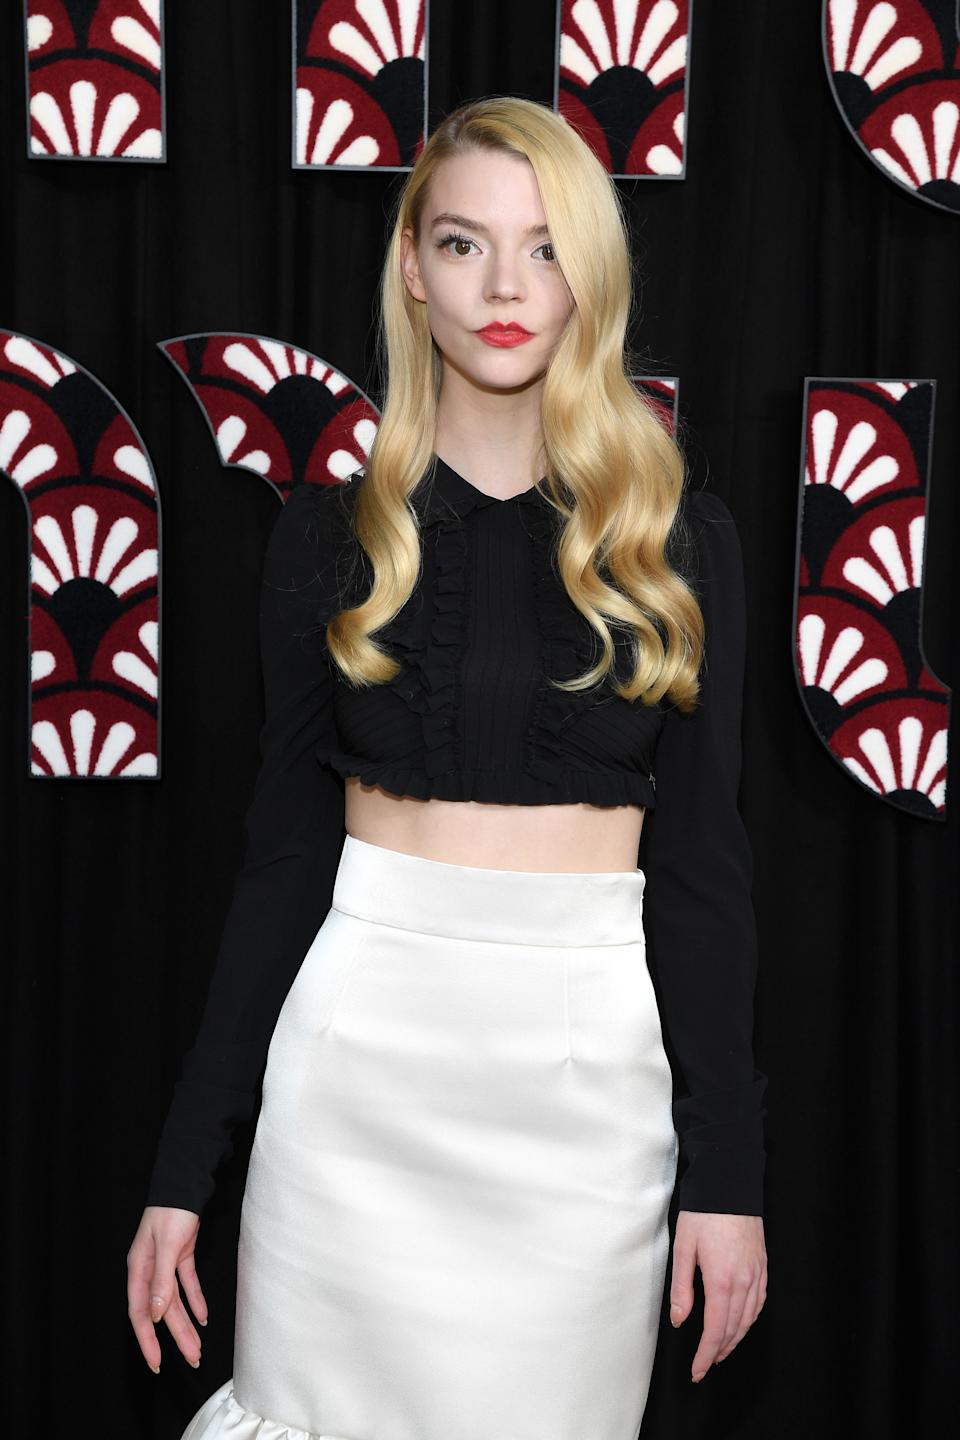 Anya Taylor-Joy didn't enjoy seeing herself on the big screen at first. (Photo by Pascal Le Segretain/Getty Images)